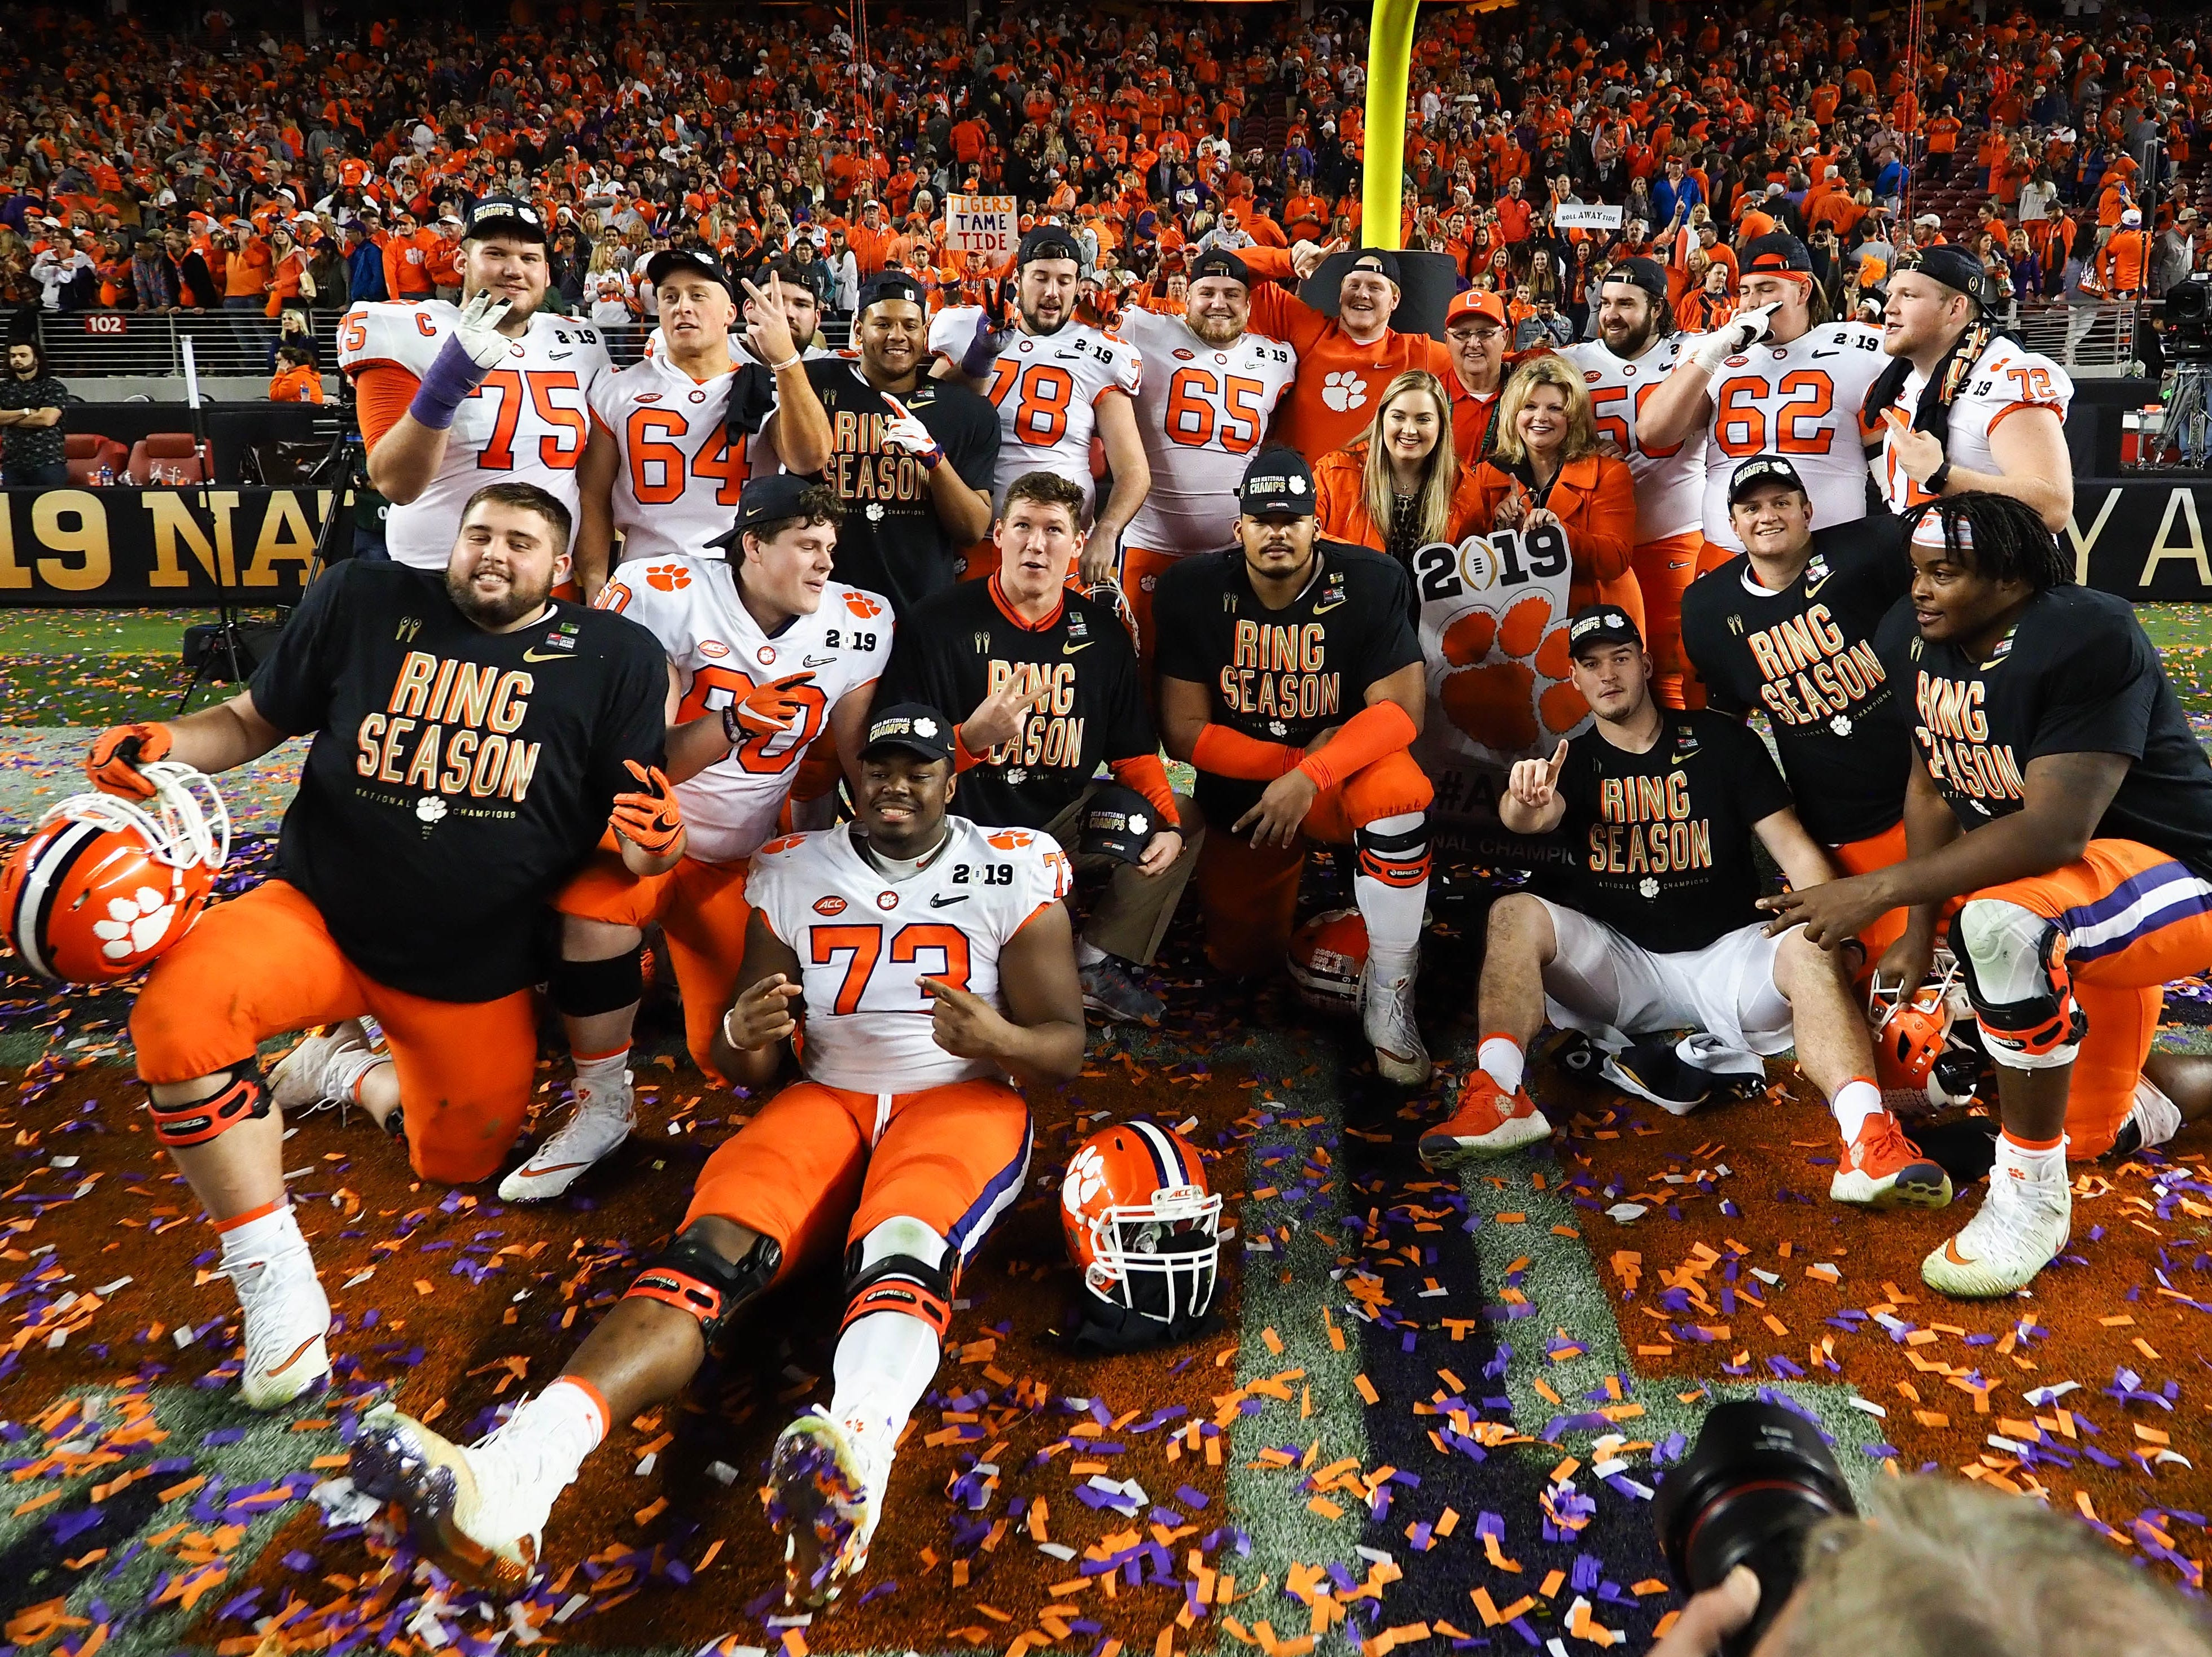 Clemson Tigers players pose for a photo after winning the national championship.